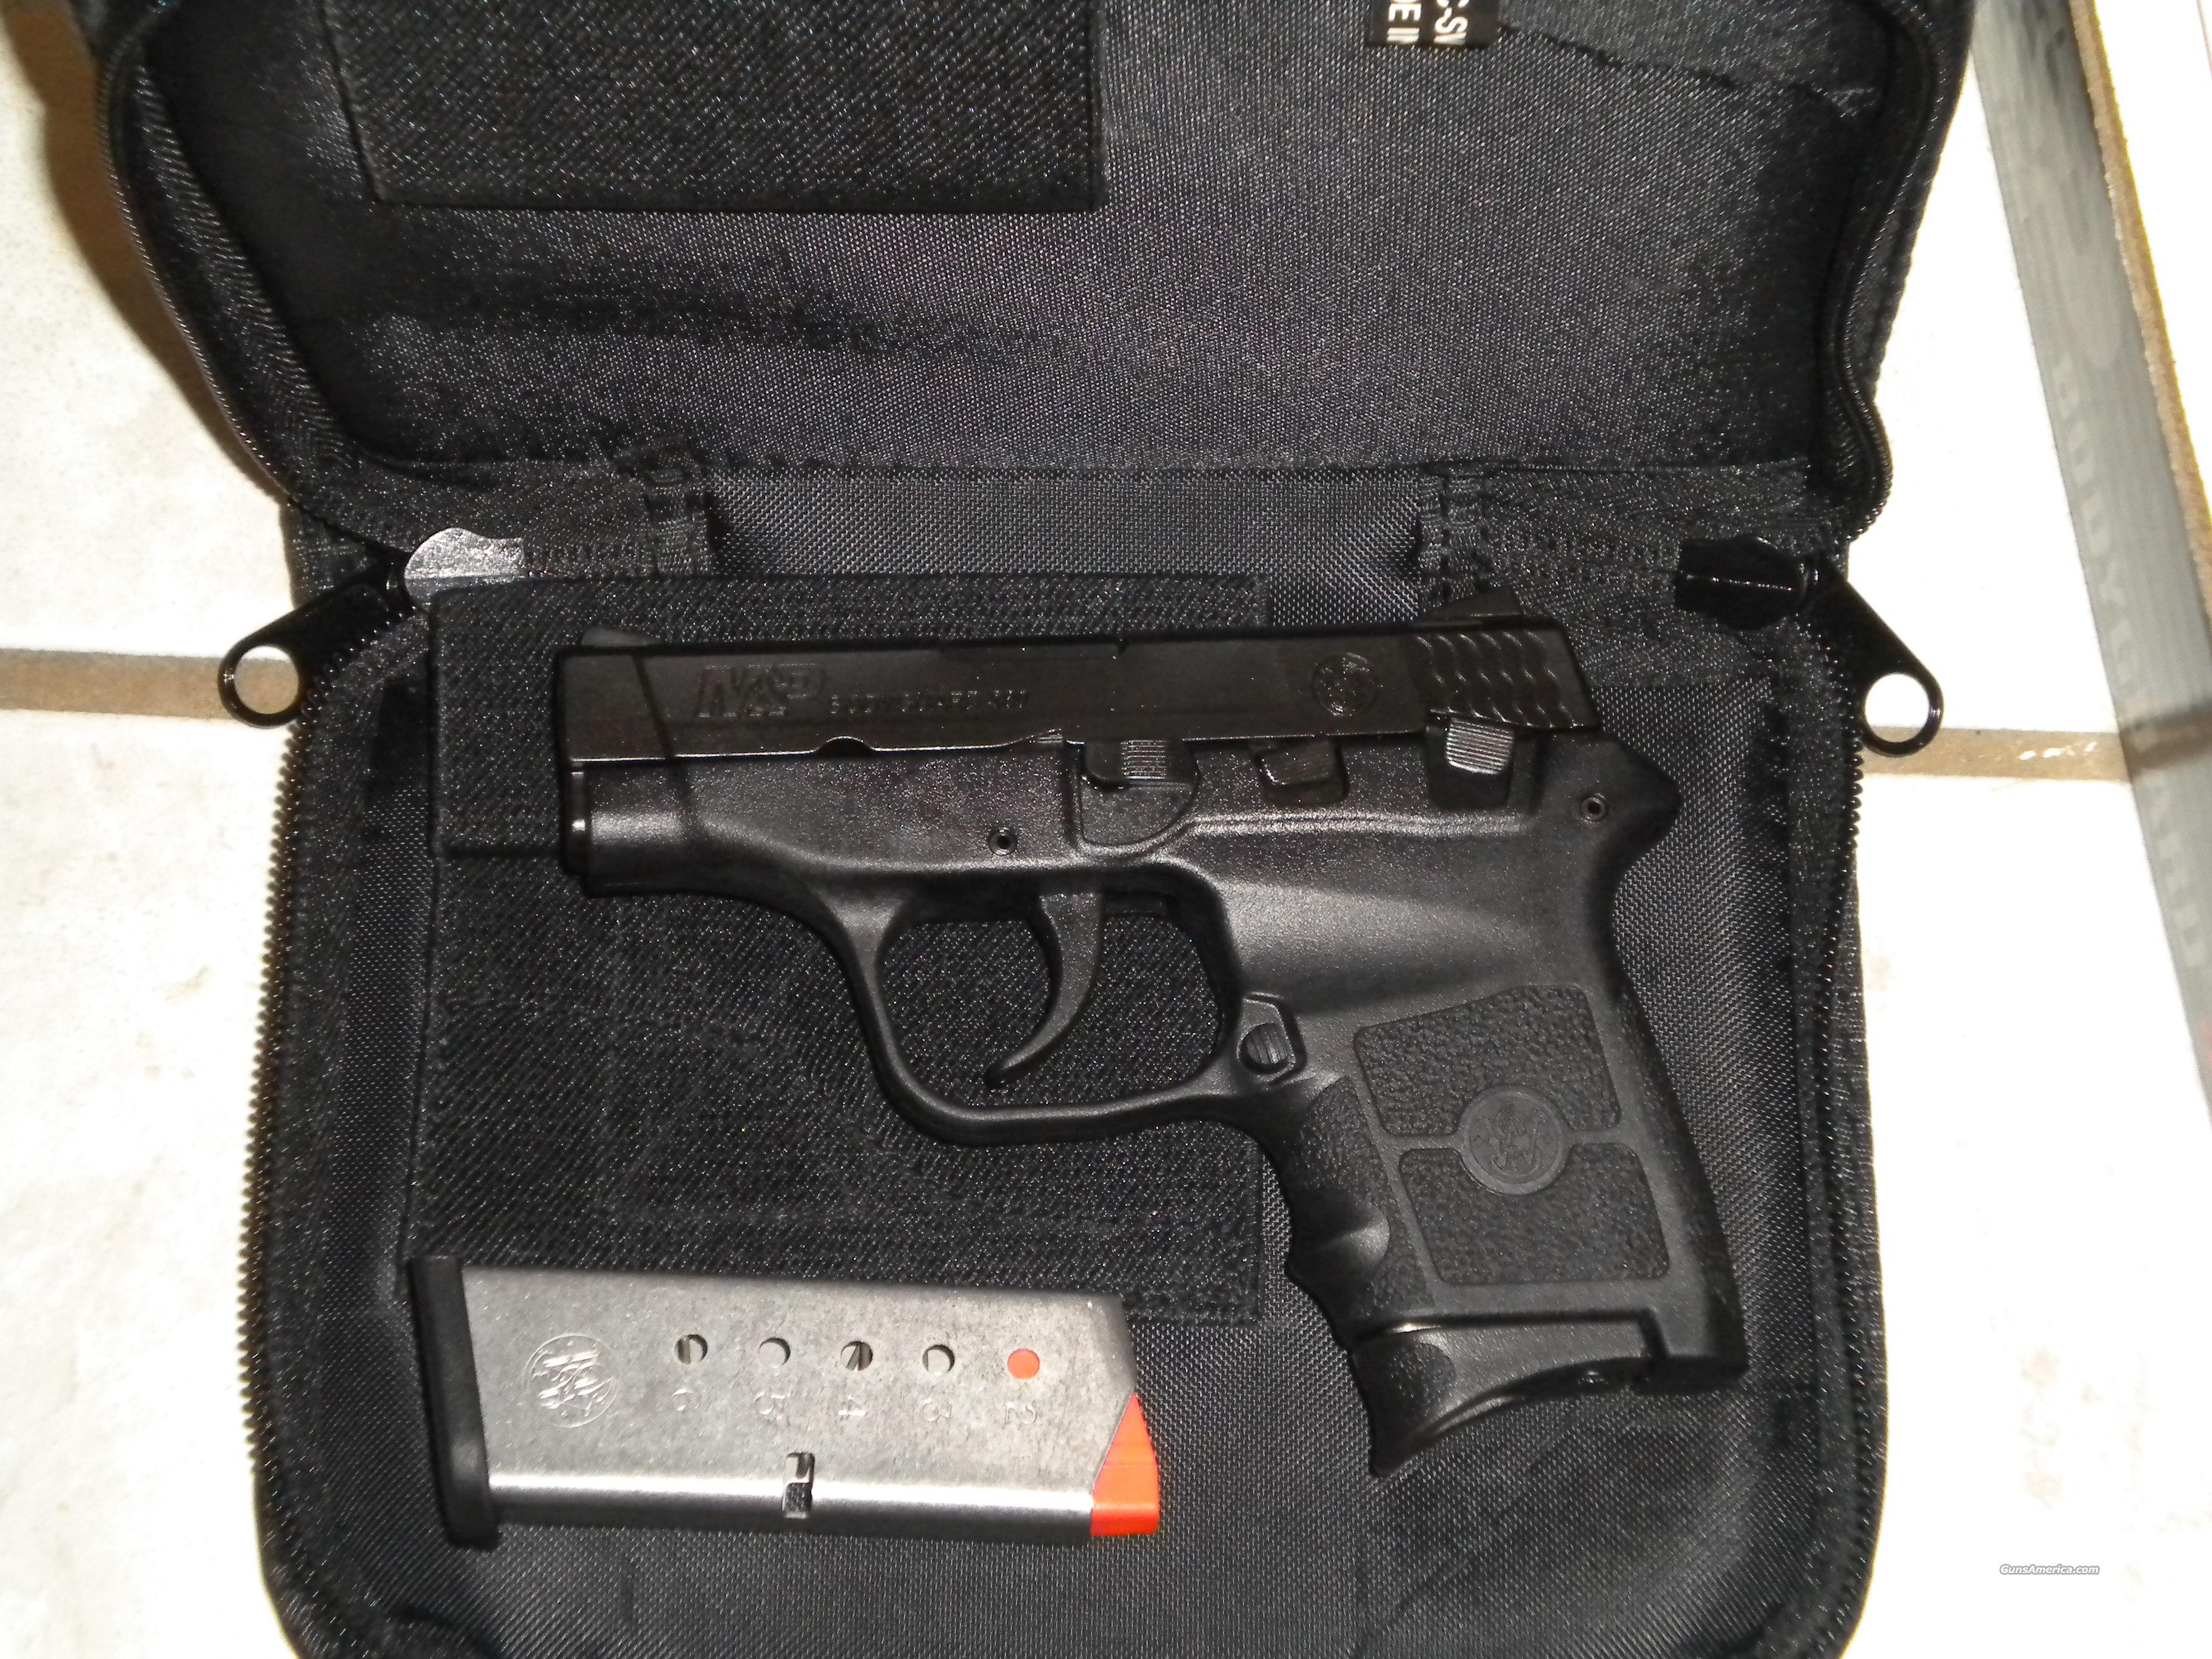 Smith & Wesson Bodyguard no laser  Guns > Pistols > Smith & Wesson Pistols - Autos > Polymer Frame